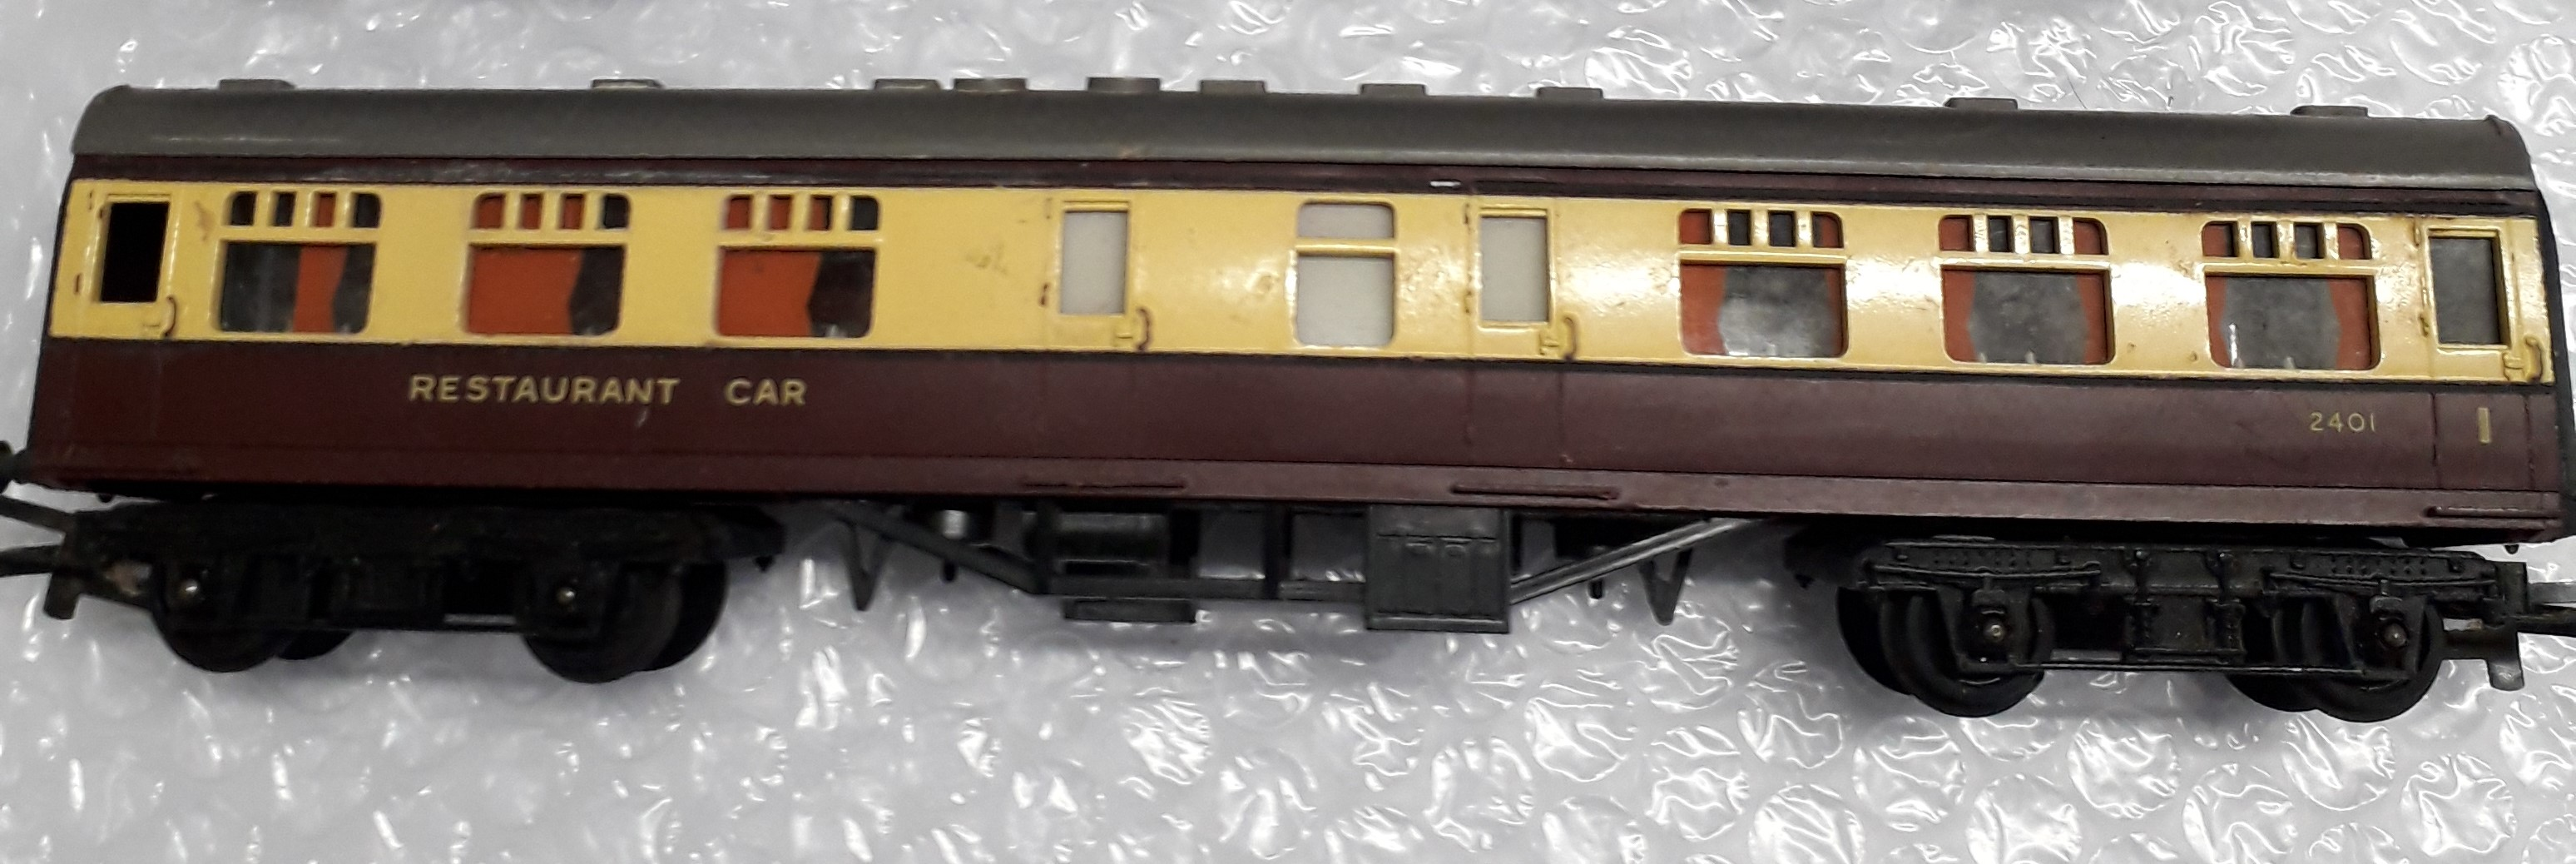 R224 Triang/Tri-Ang BR 9in Restaurant 1st, Maroon and Cream 2401